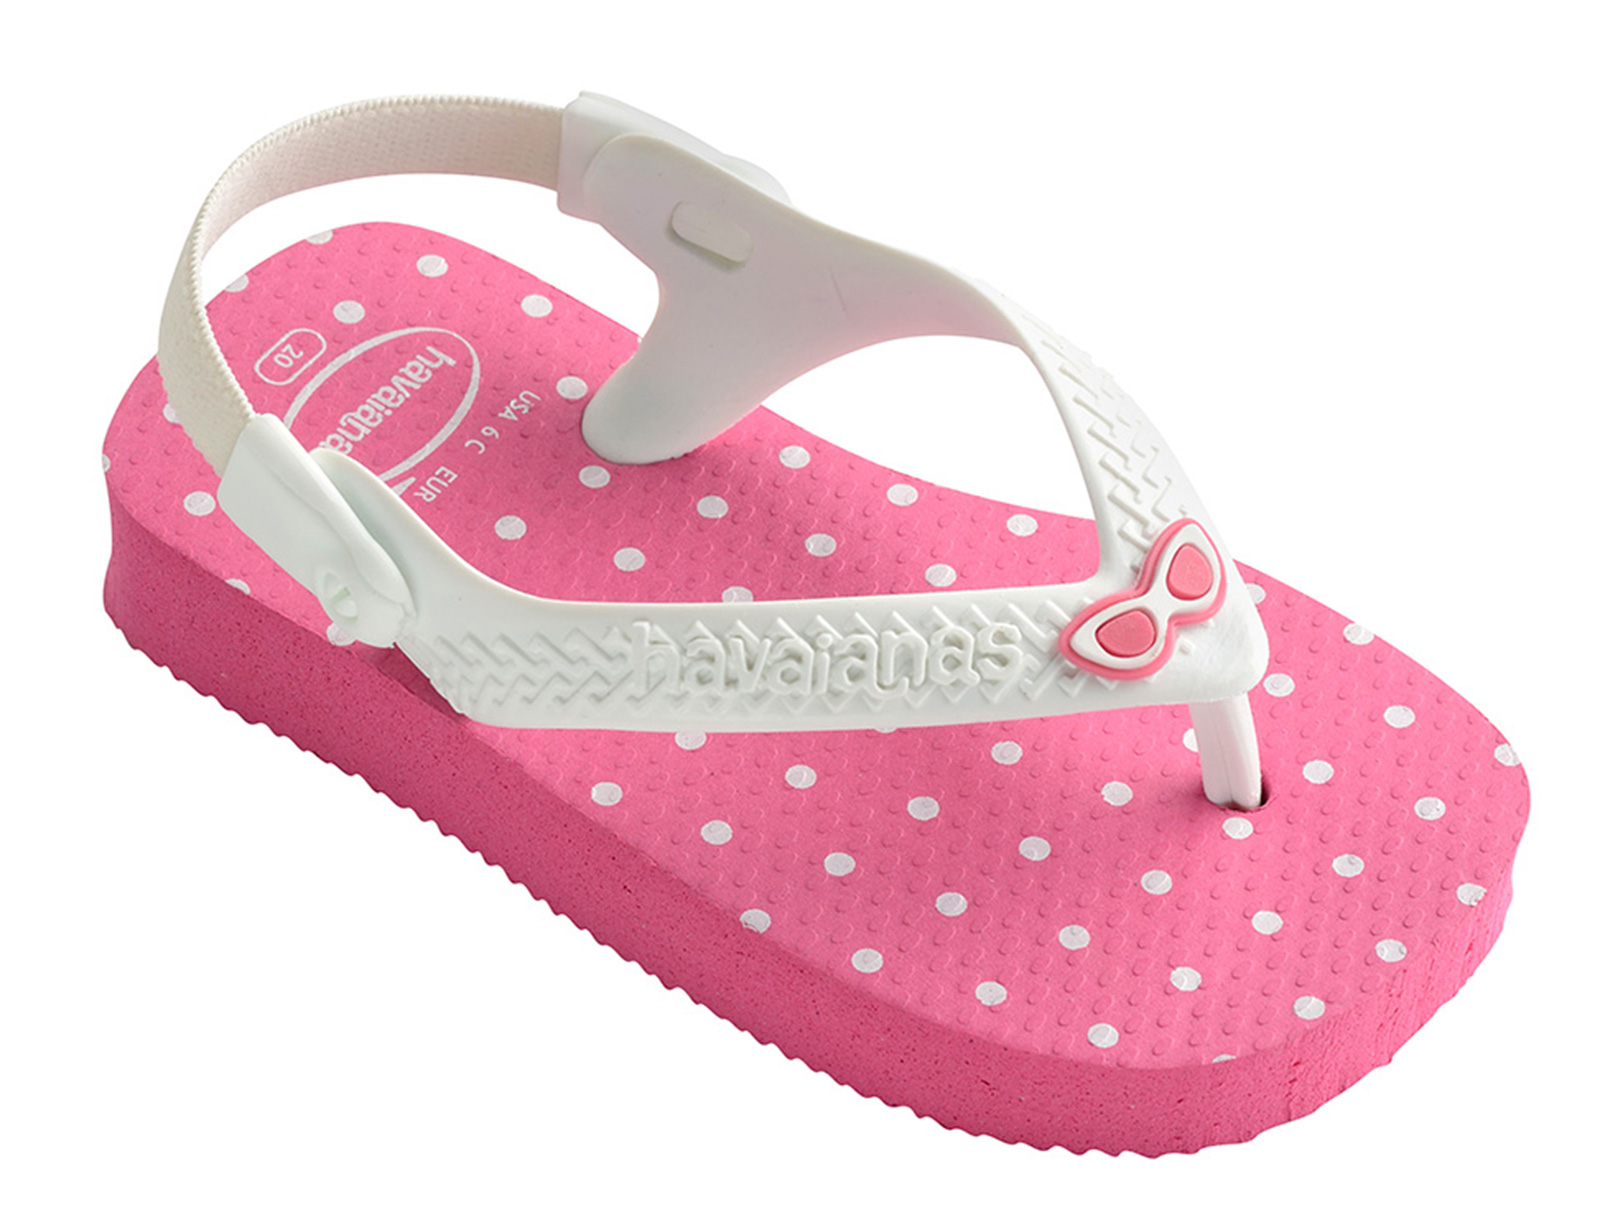 876a4383dd4e7 Sandales Tong Rose - Havaianas Baby Chic Shocking Pink white